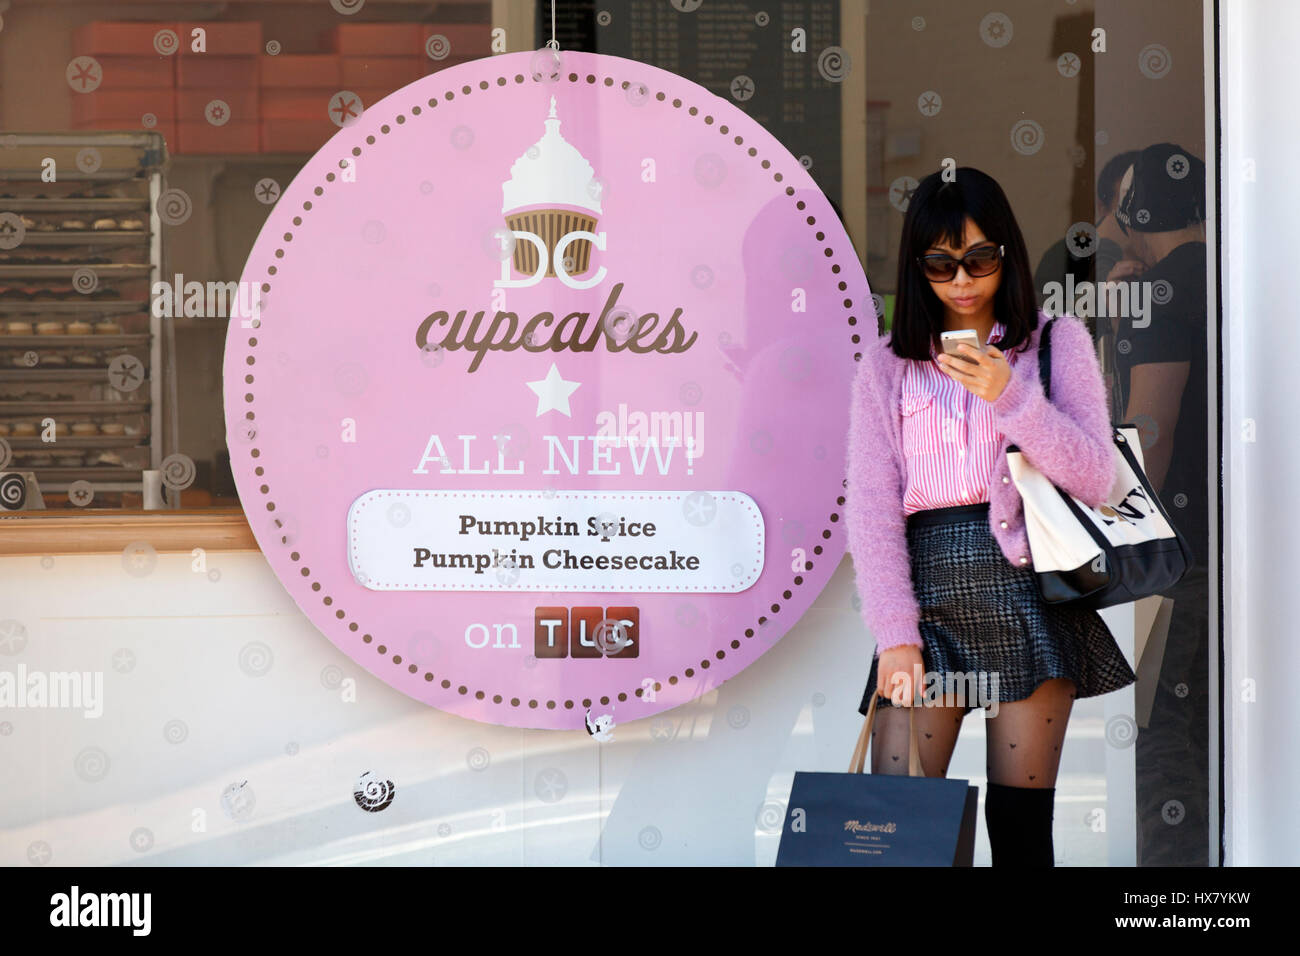 A picture of the outside of Georgetown Cup Cakes in Washington DC. A customer waits outside the shop and is using - Stock Image